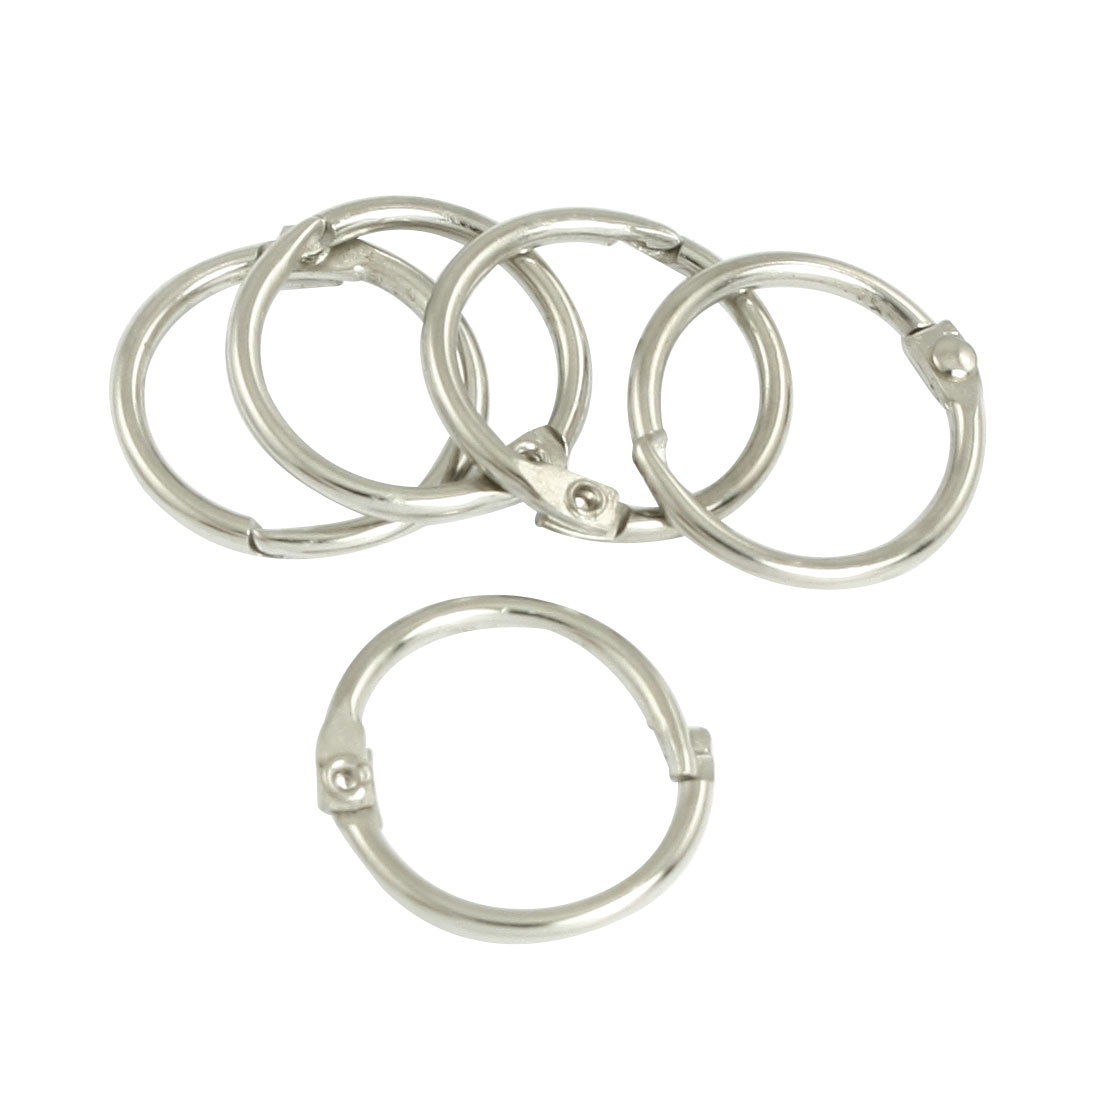 "5 Pcs 0.7"" Dia Round Shape Metal Clip Key Chain Keyring"